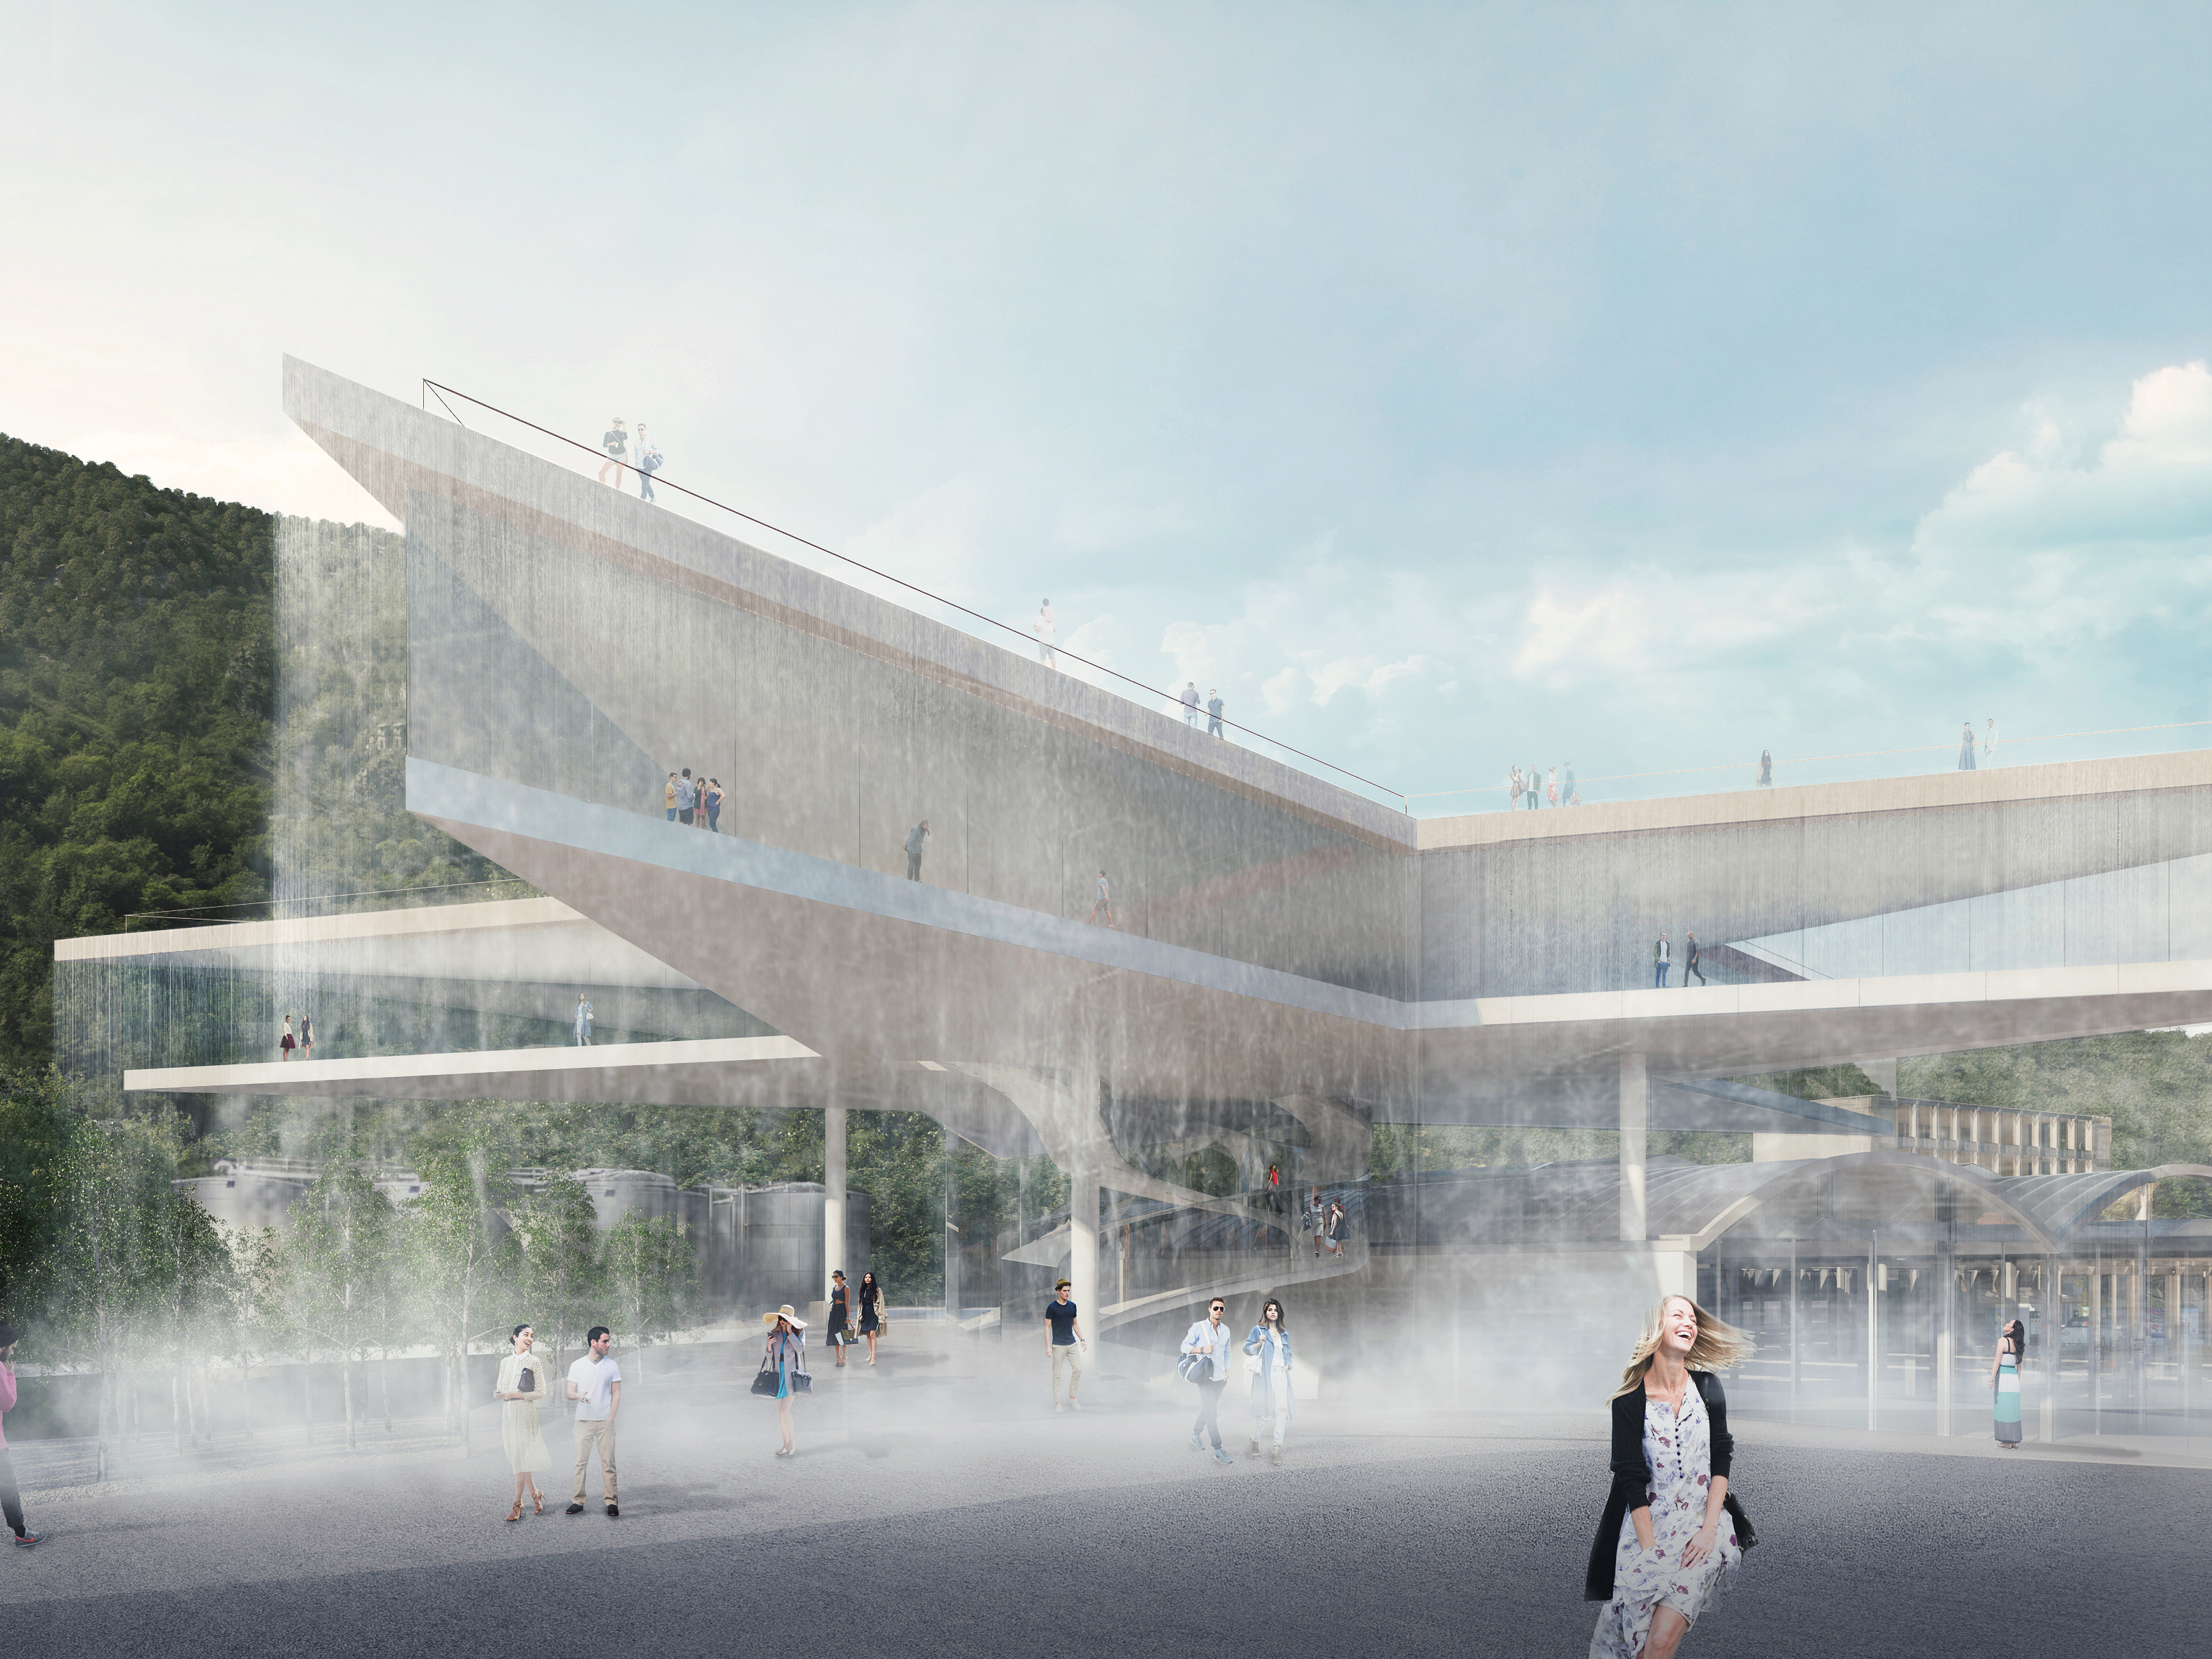 MVRDV shortlisted as a finalist to build S.Pellegrino's new home